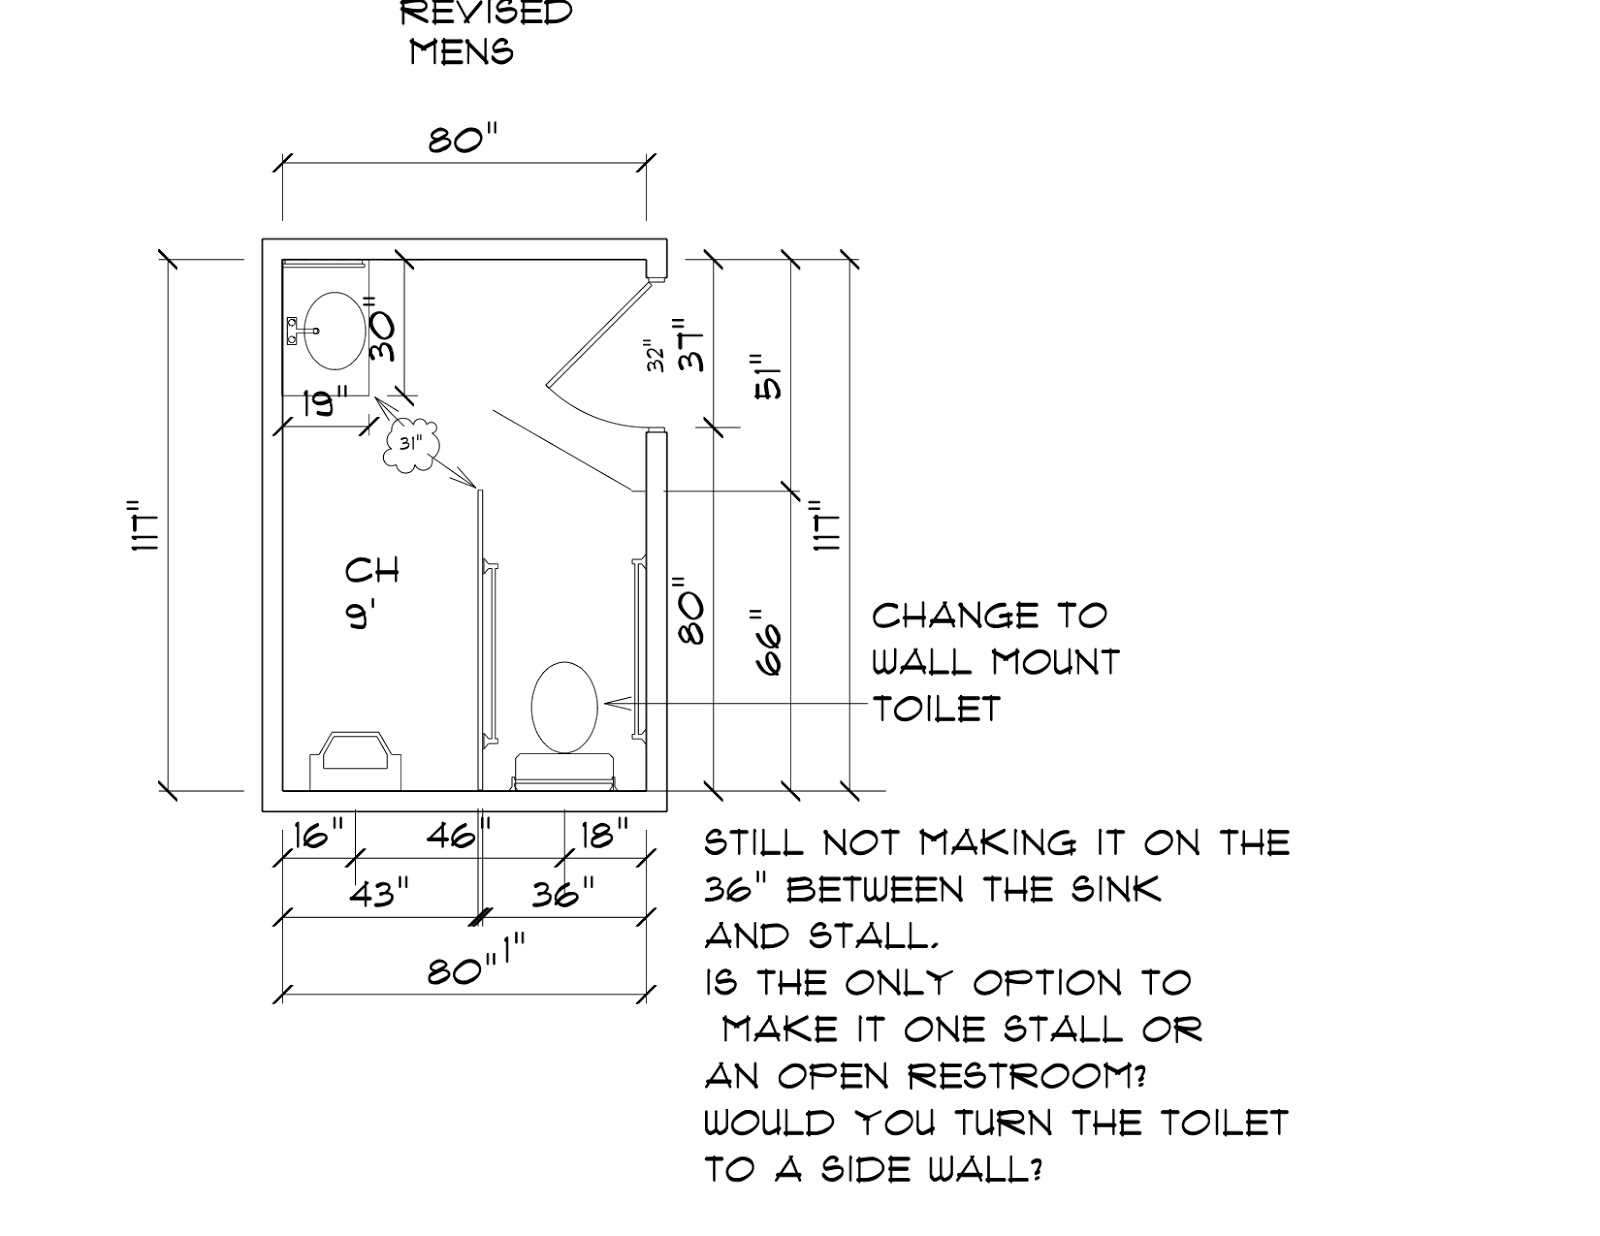 Ada Bathroom Accessories Mounting Heights ada: redesigning a public men's bathroom based on ada regulations